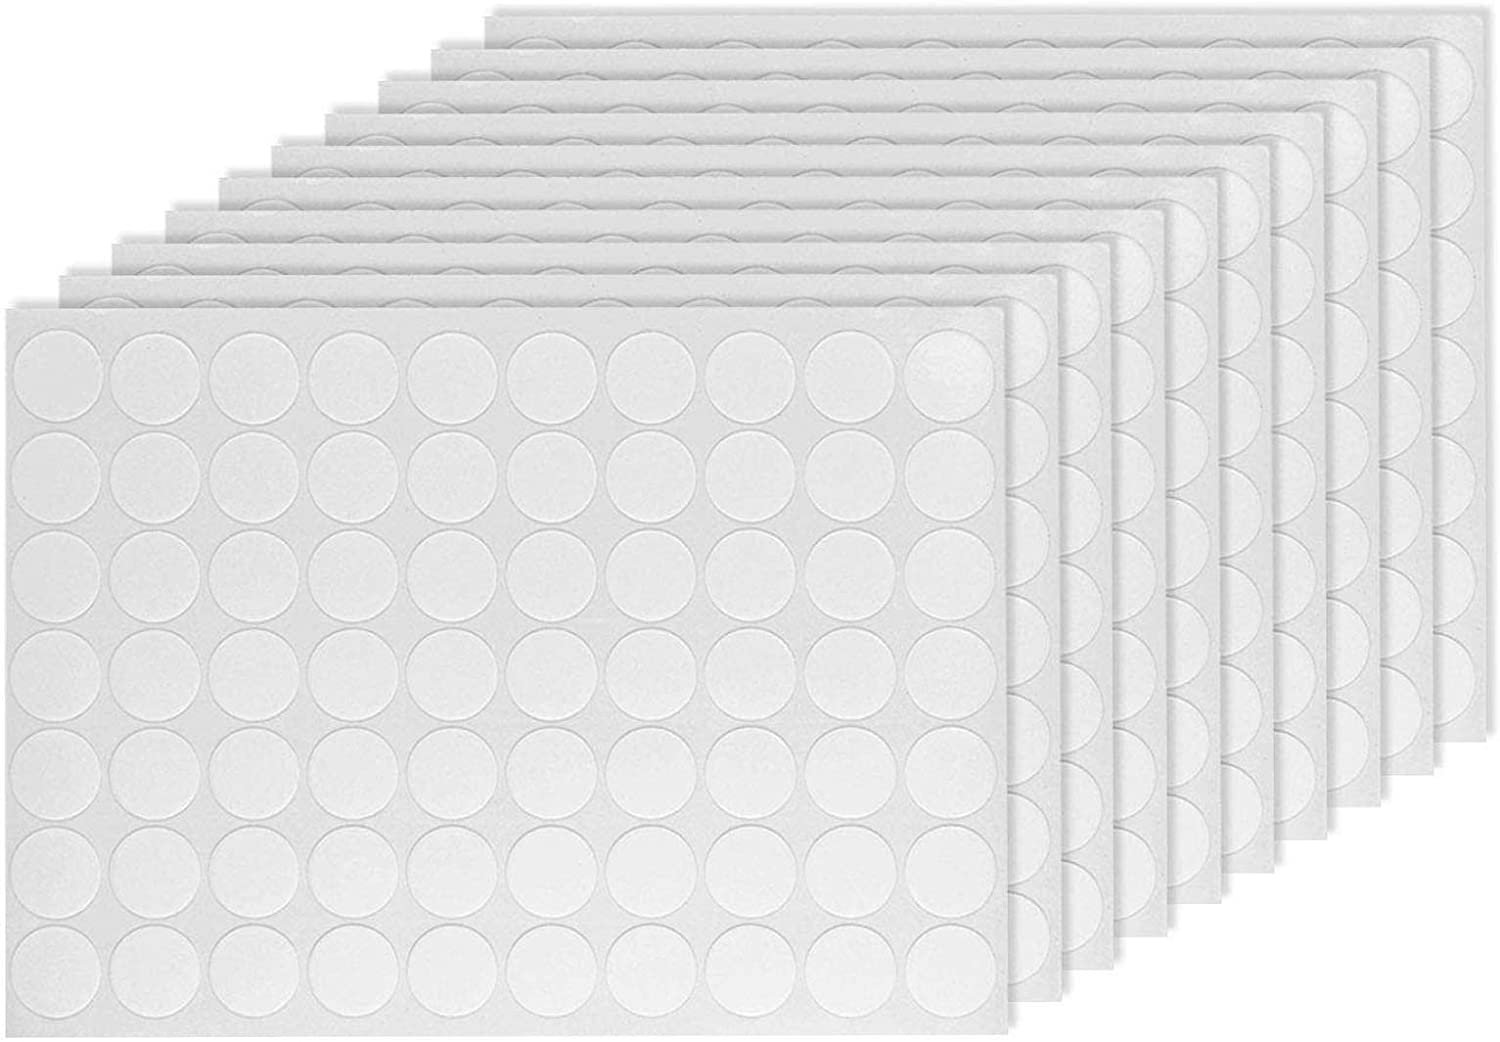 Wall Safe Sticky Putty 700pcs, Clear Round Removable Adhesive Sticky Tack Putty for Hanging Posters Stick Decoration and Fixed Items